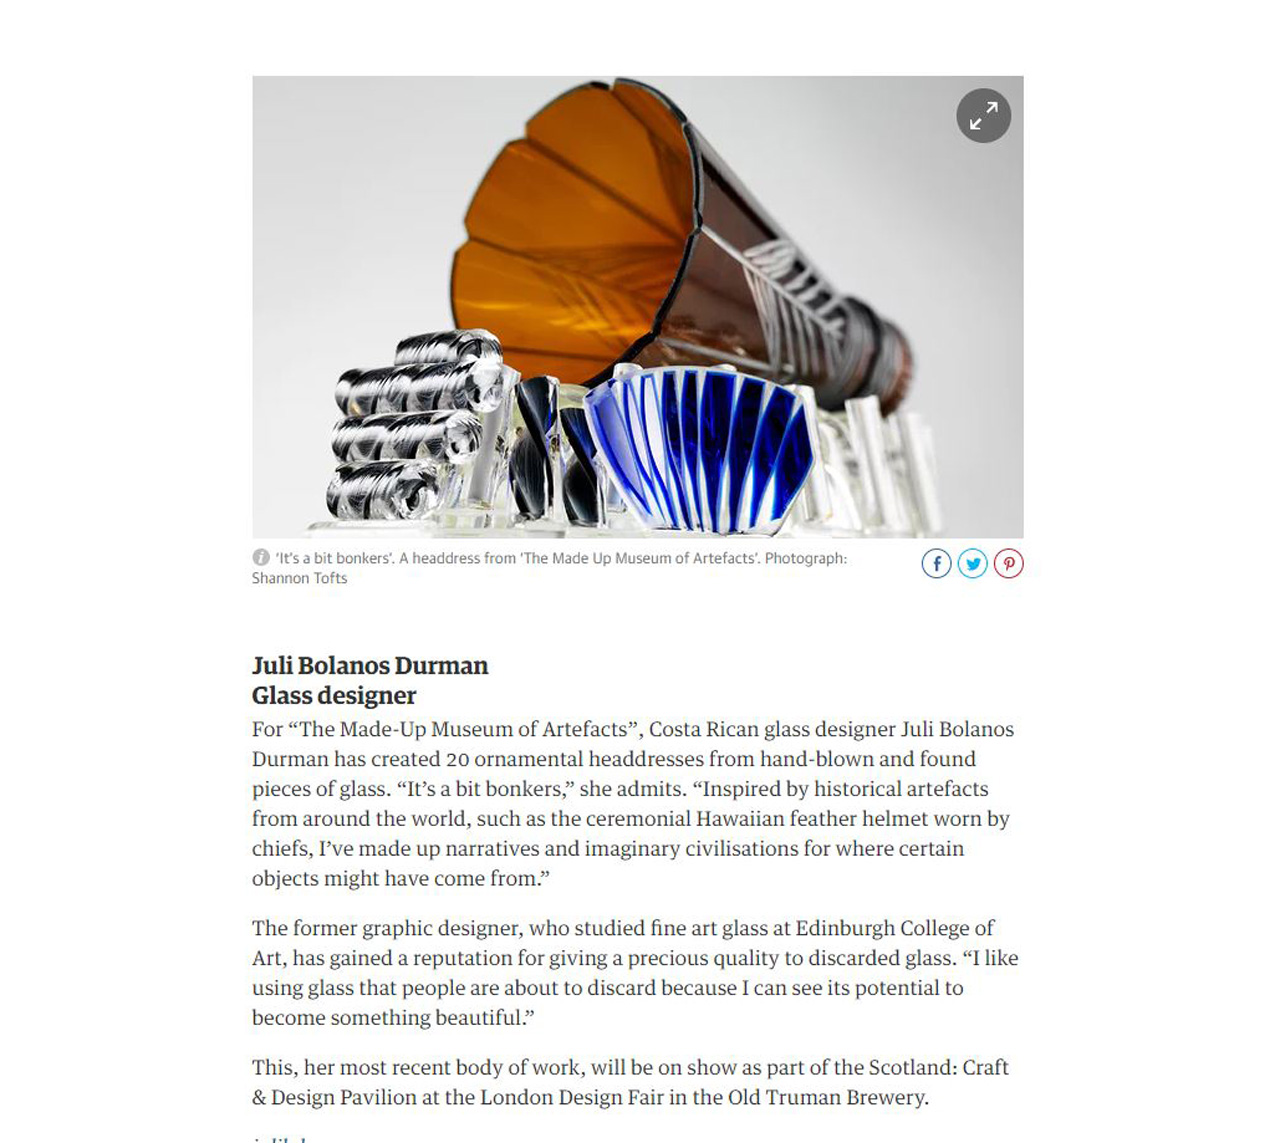 The Guardian: Scotland: Craft & Design - Shannon Tofts